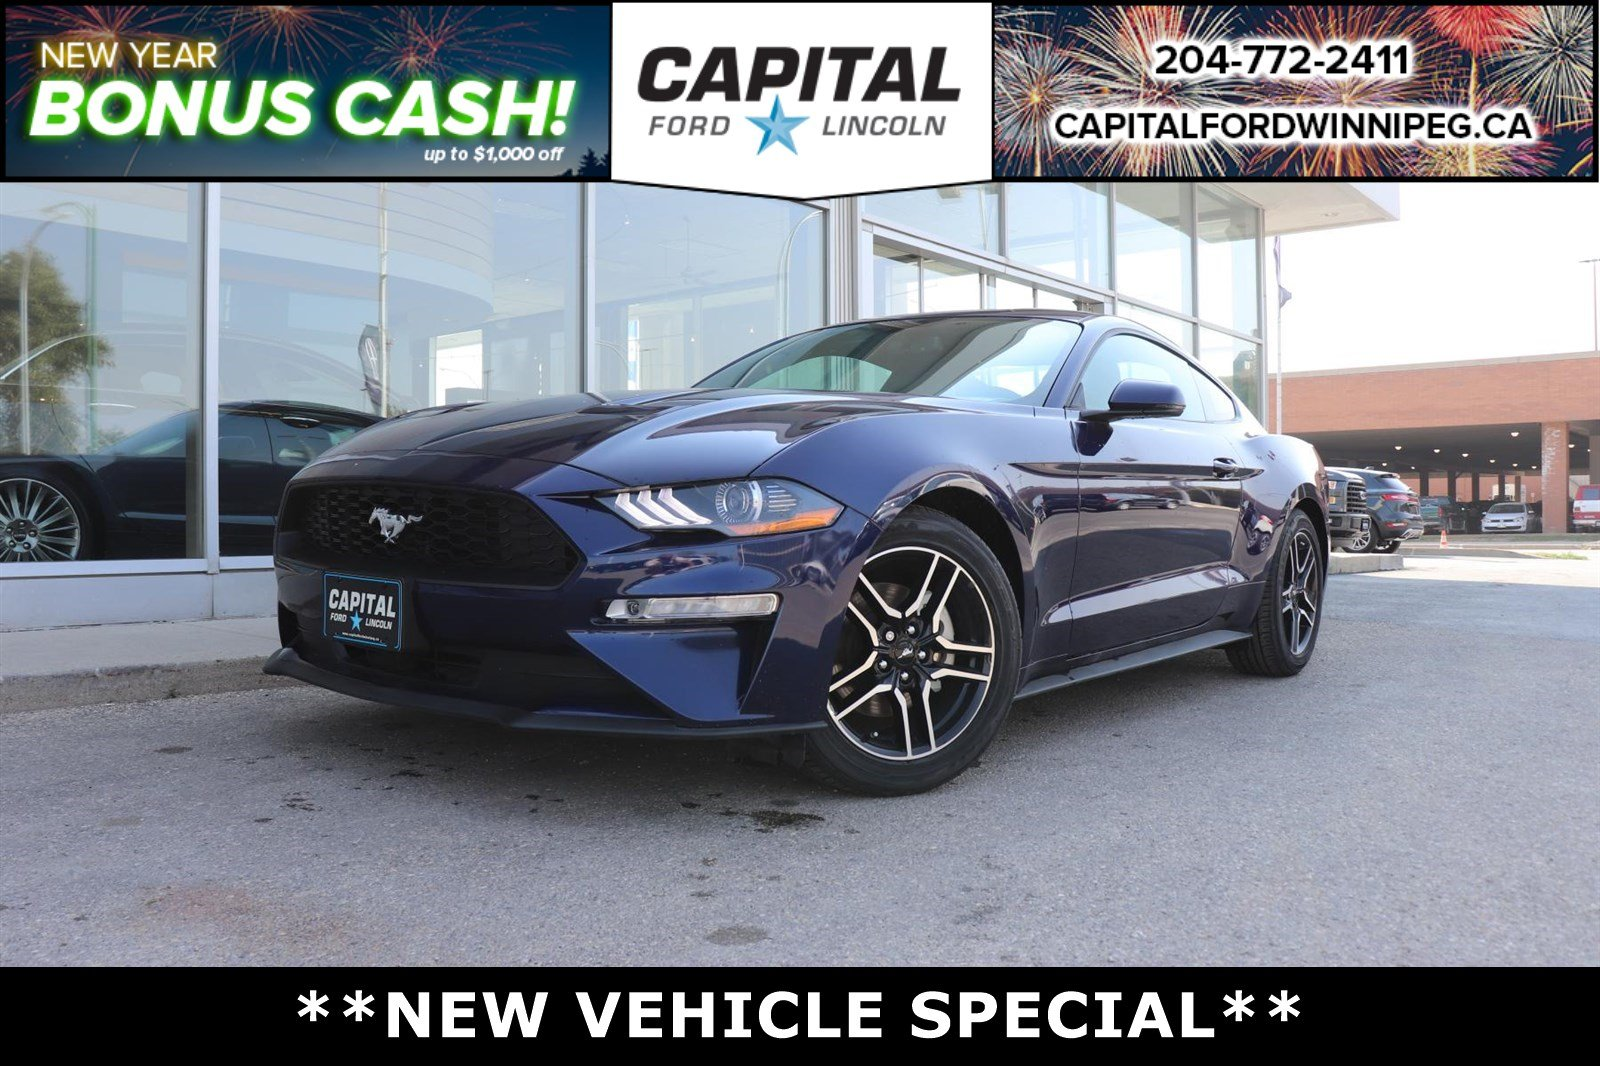 New 2018 Ford Mustang $5300 savings! EcoBoost Premium*Navigation*Leather*6 spd Manual*